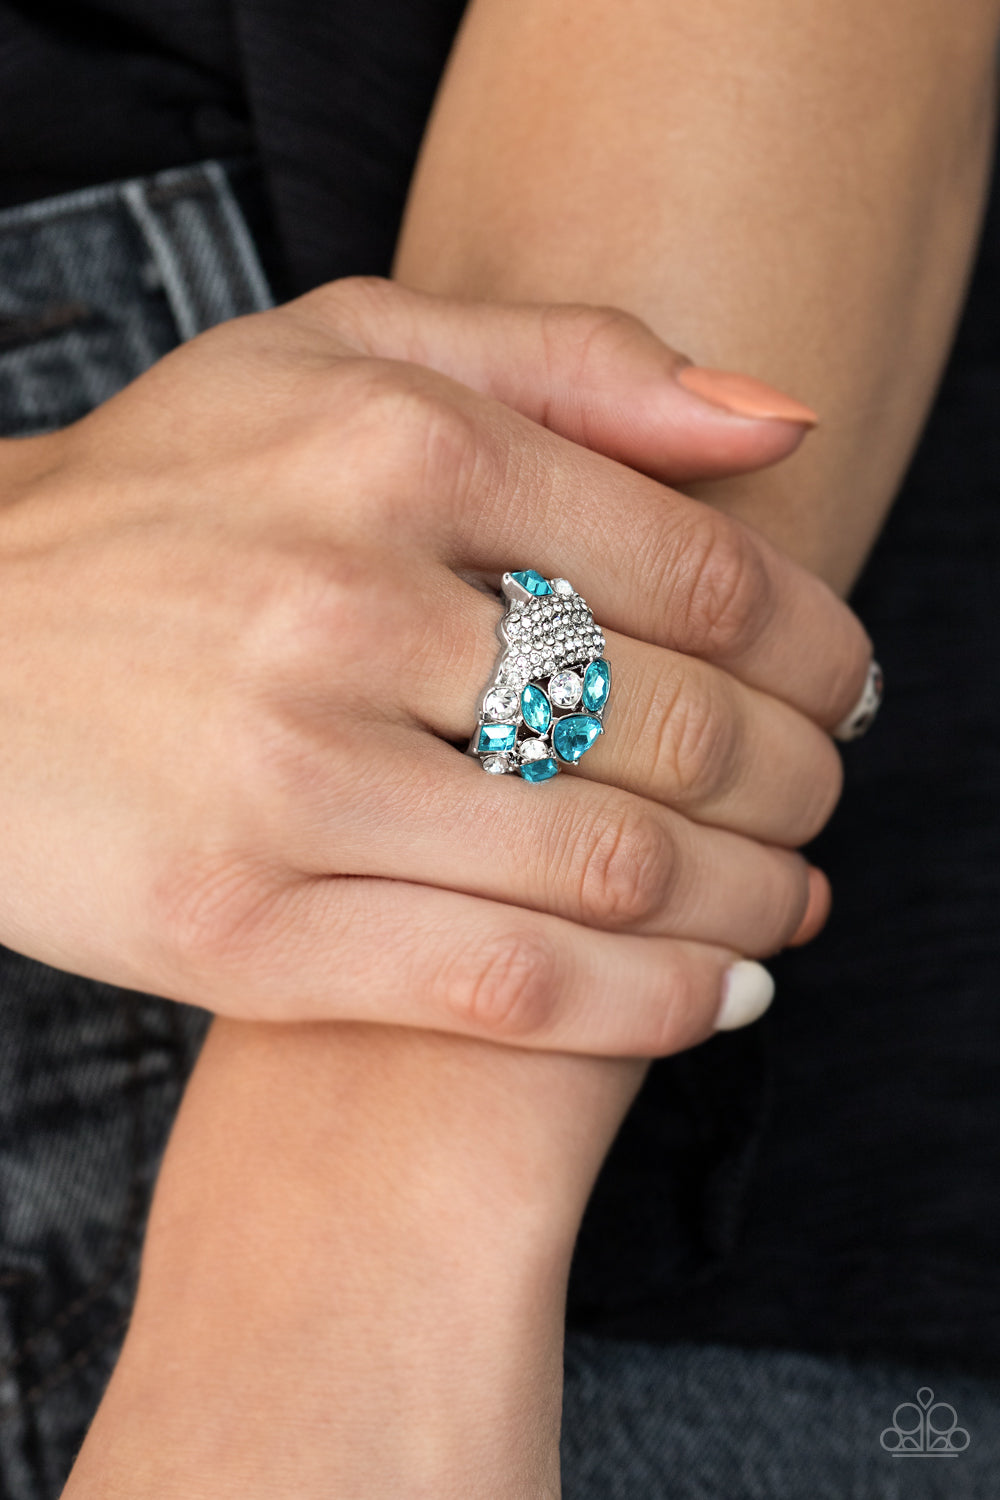 Paparazzi Jewelry & Accessories - Sparkle Bust - Blue Ring. Bling By Titia Boutique